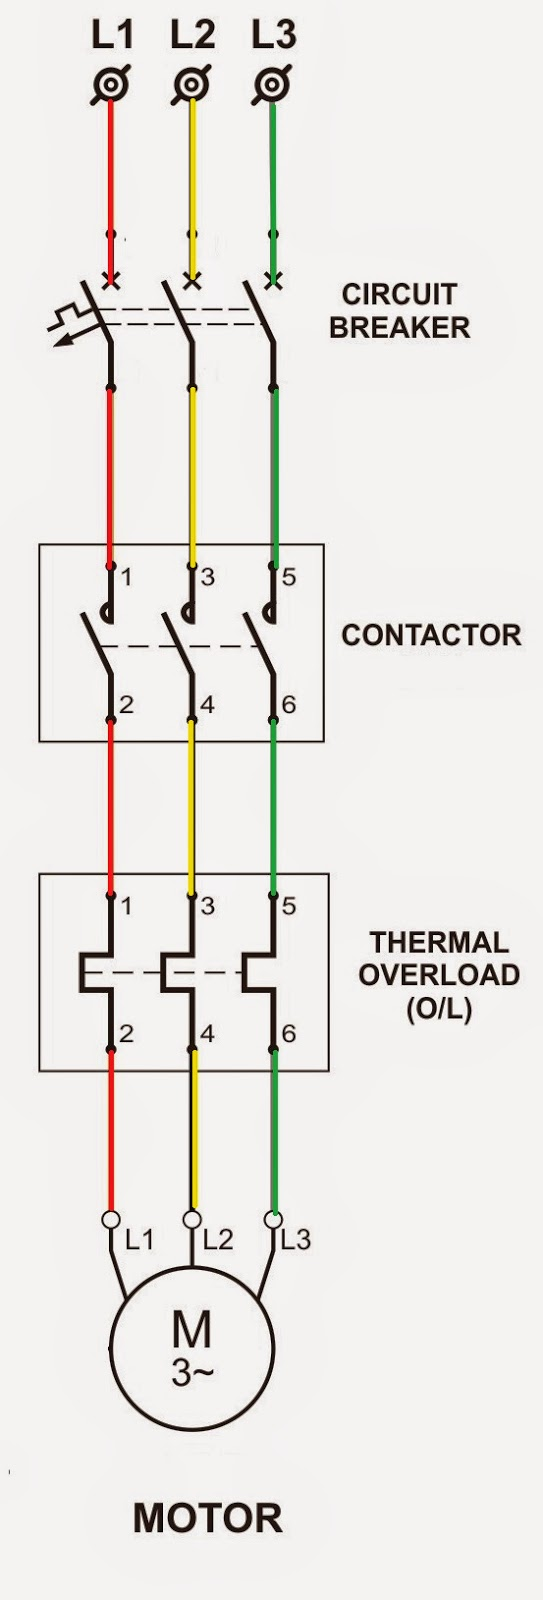 electrical standards direct online dol starter rh electrialstandards blogspot com d.o.l starter control circuit diagram d.o.l starter power and control circuit diagram